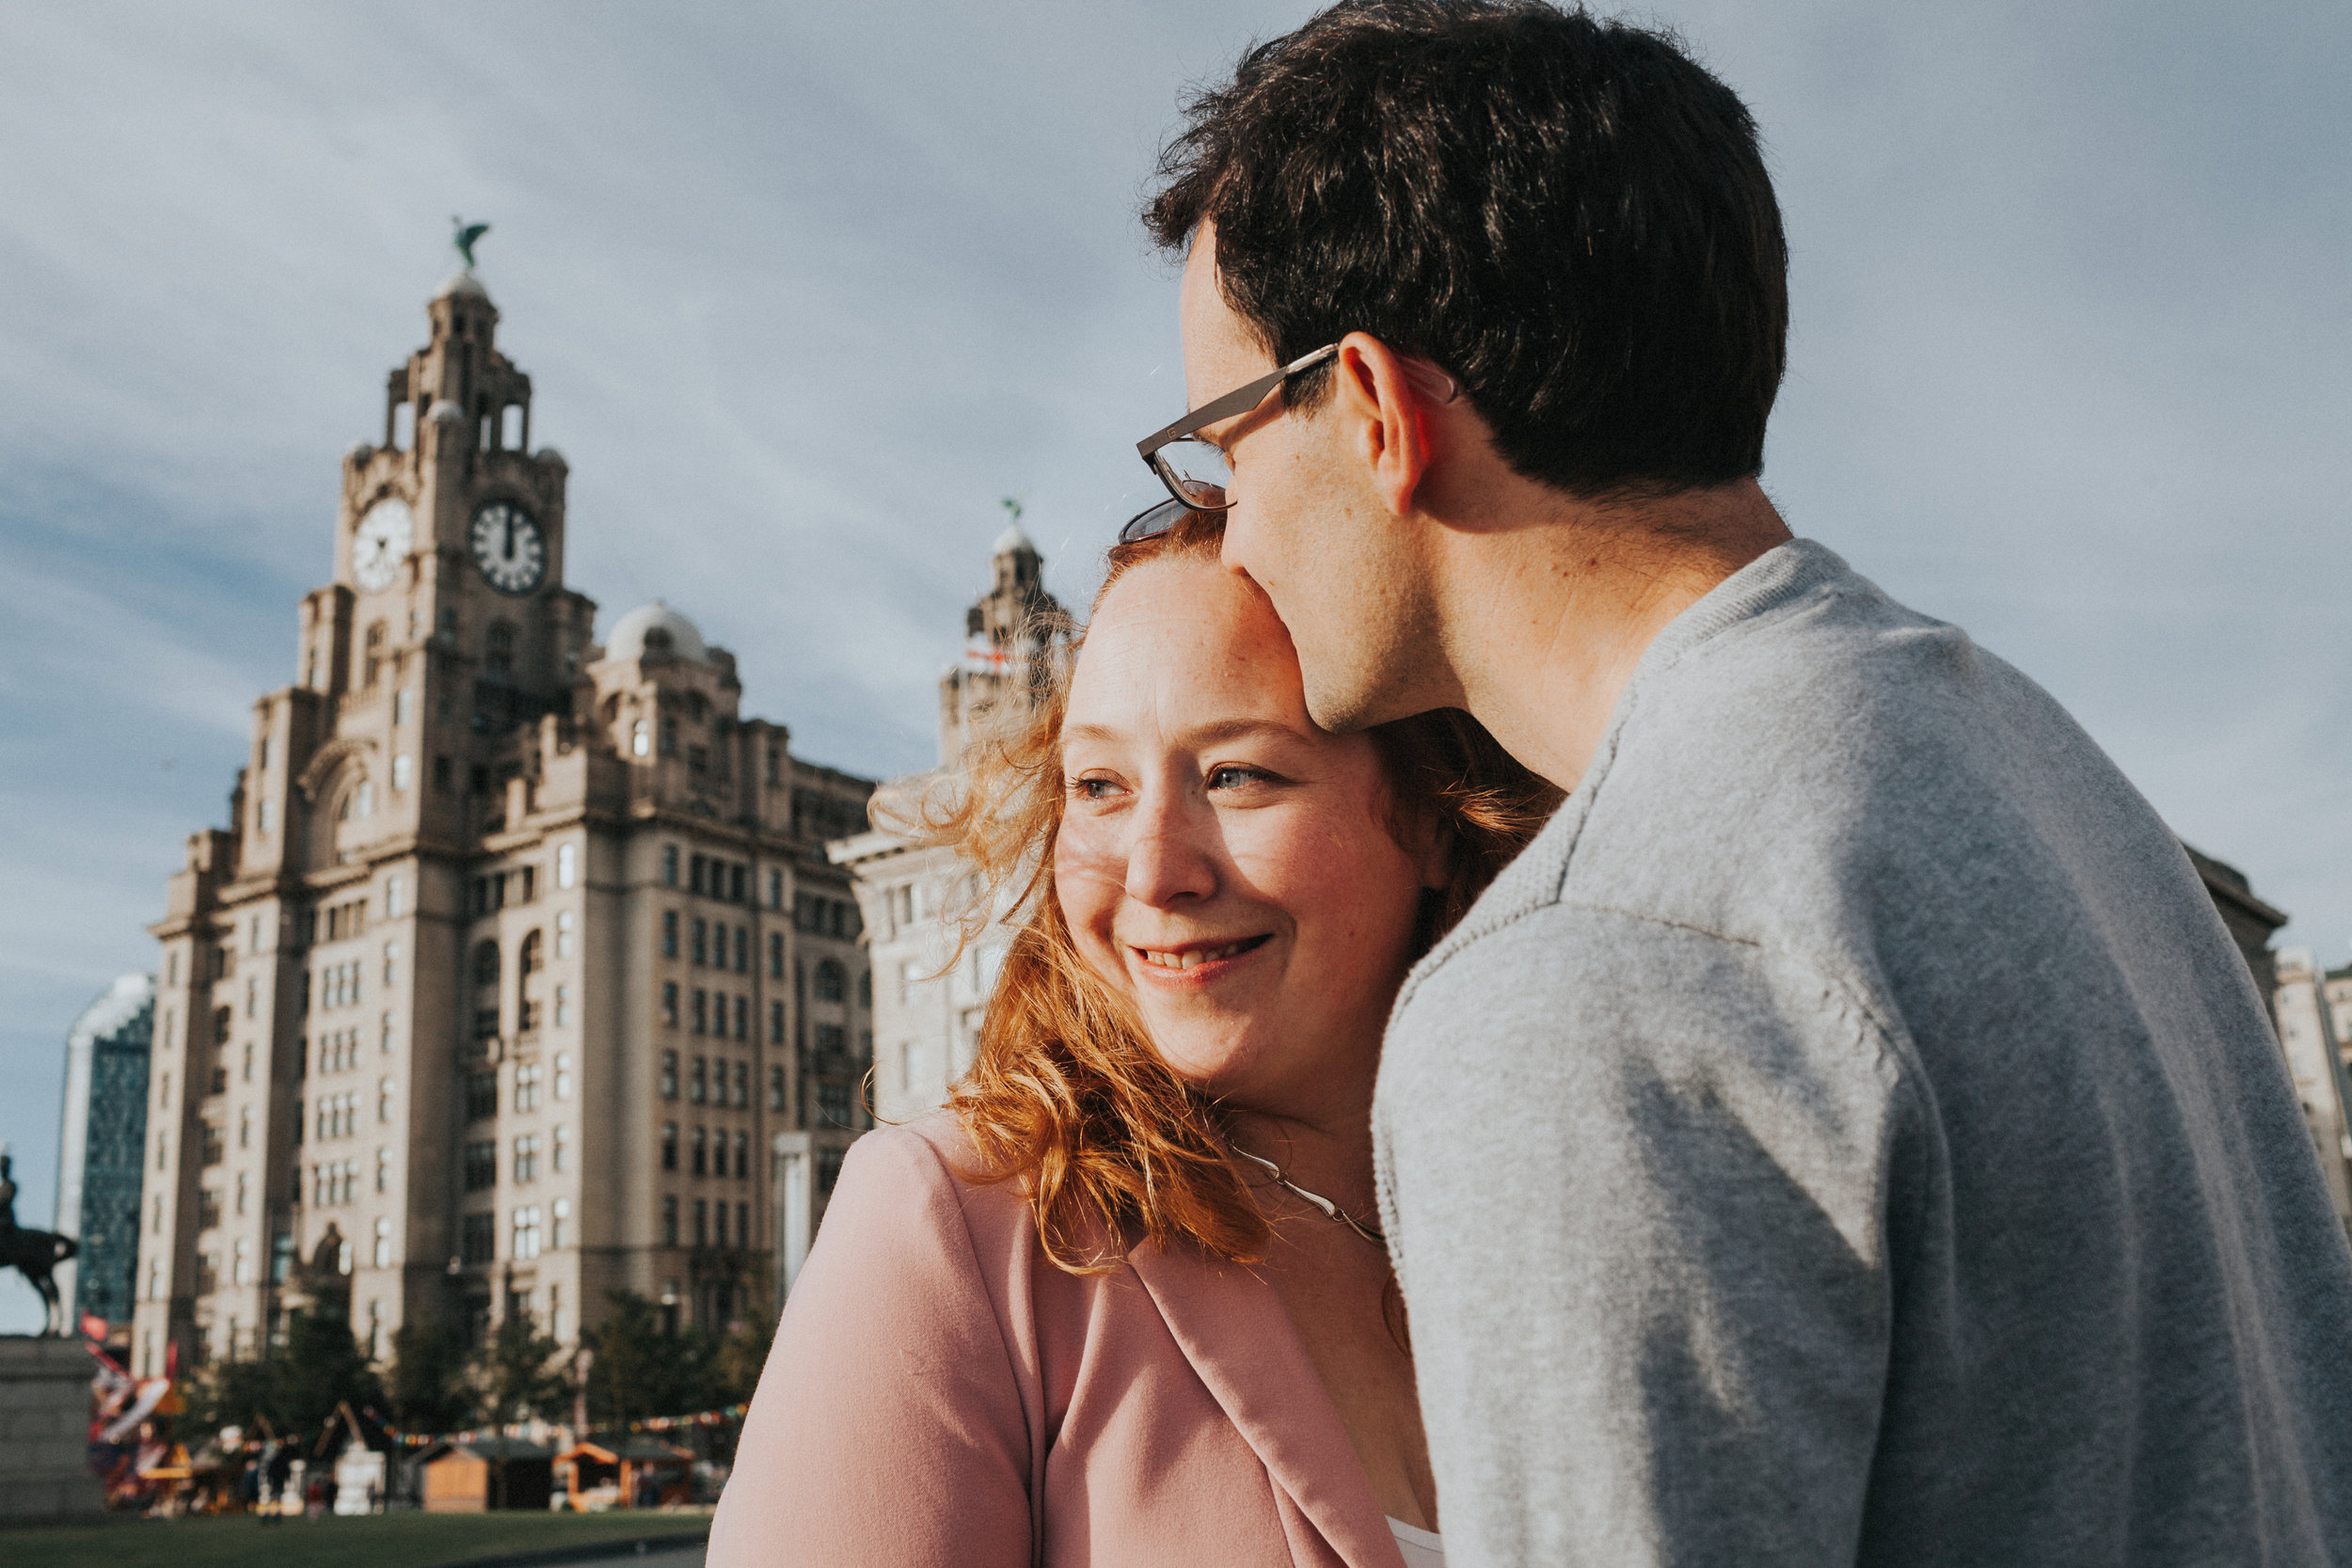 Couple in front of Liver Buildings smiling